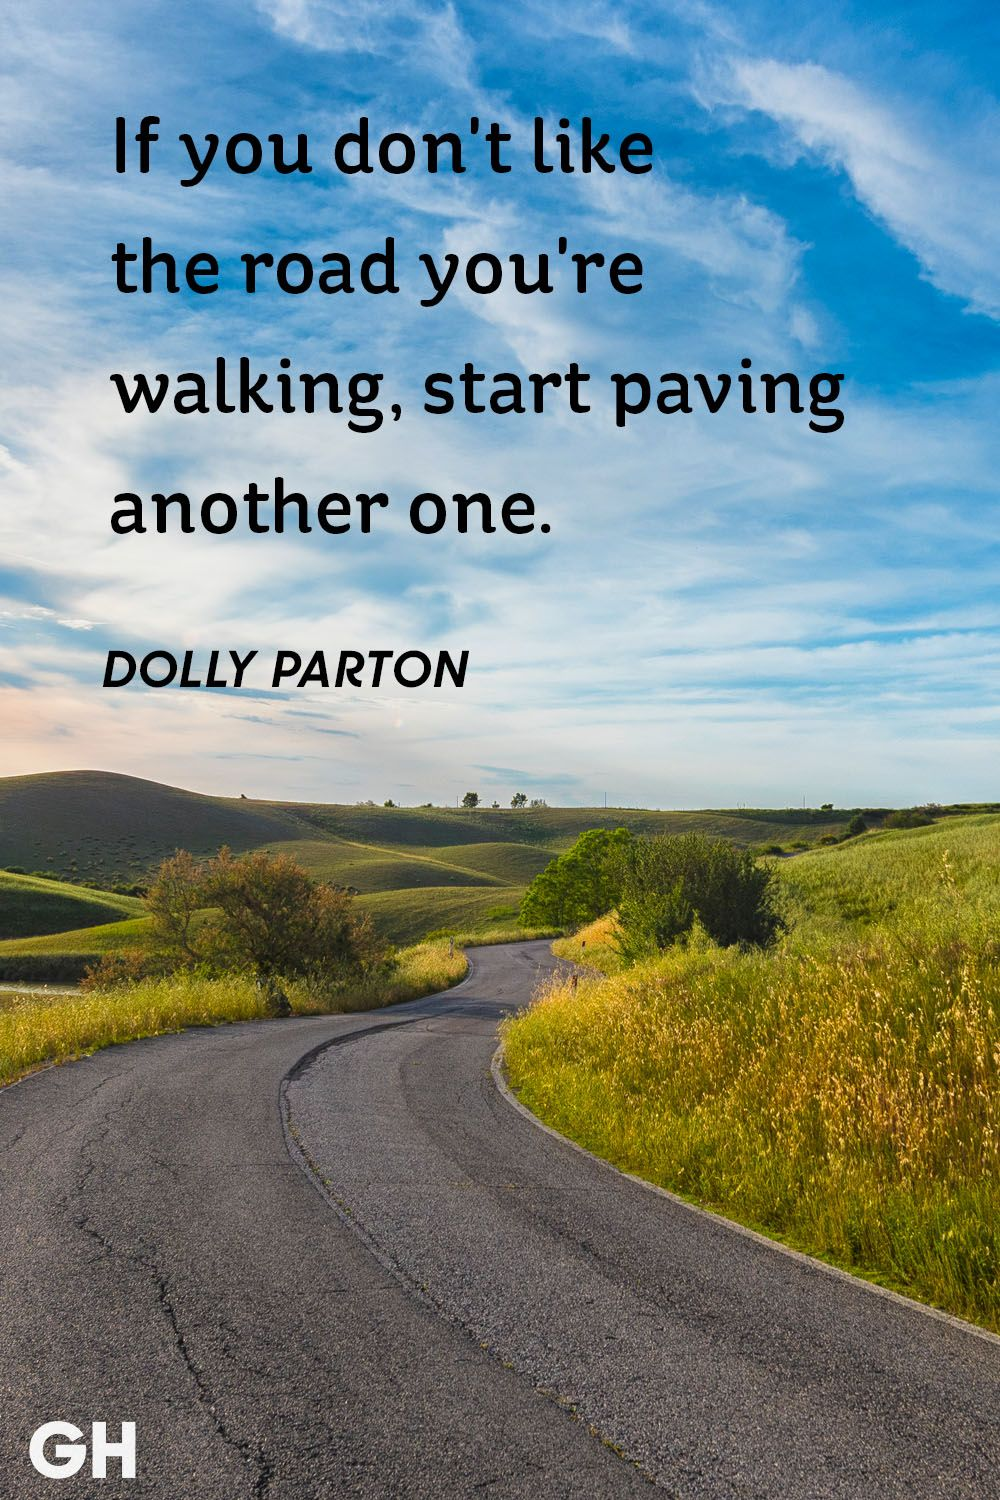 Image of: Shutterstock Dolly Parton Beautiful Life Quote Good Housekeeping 30 Inspirational Quotes About Life Beautiful Famous Life Quotes